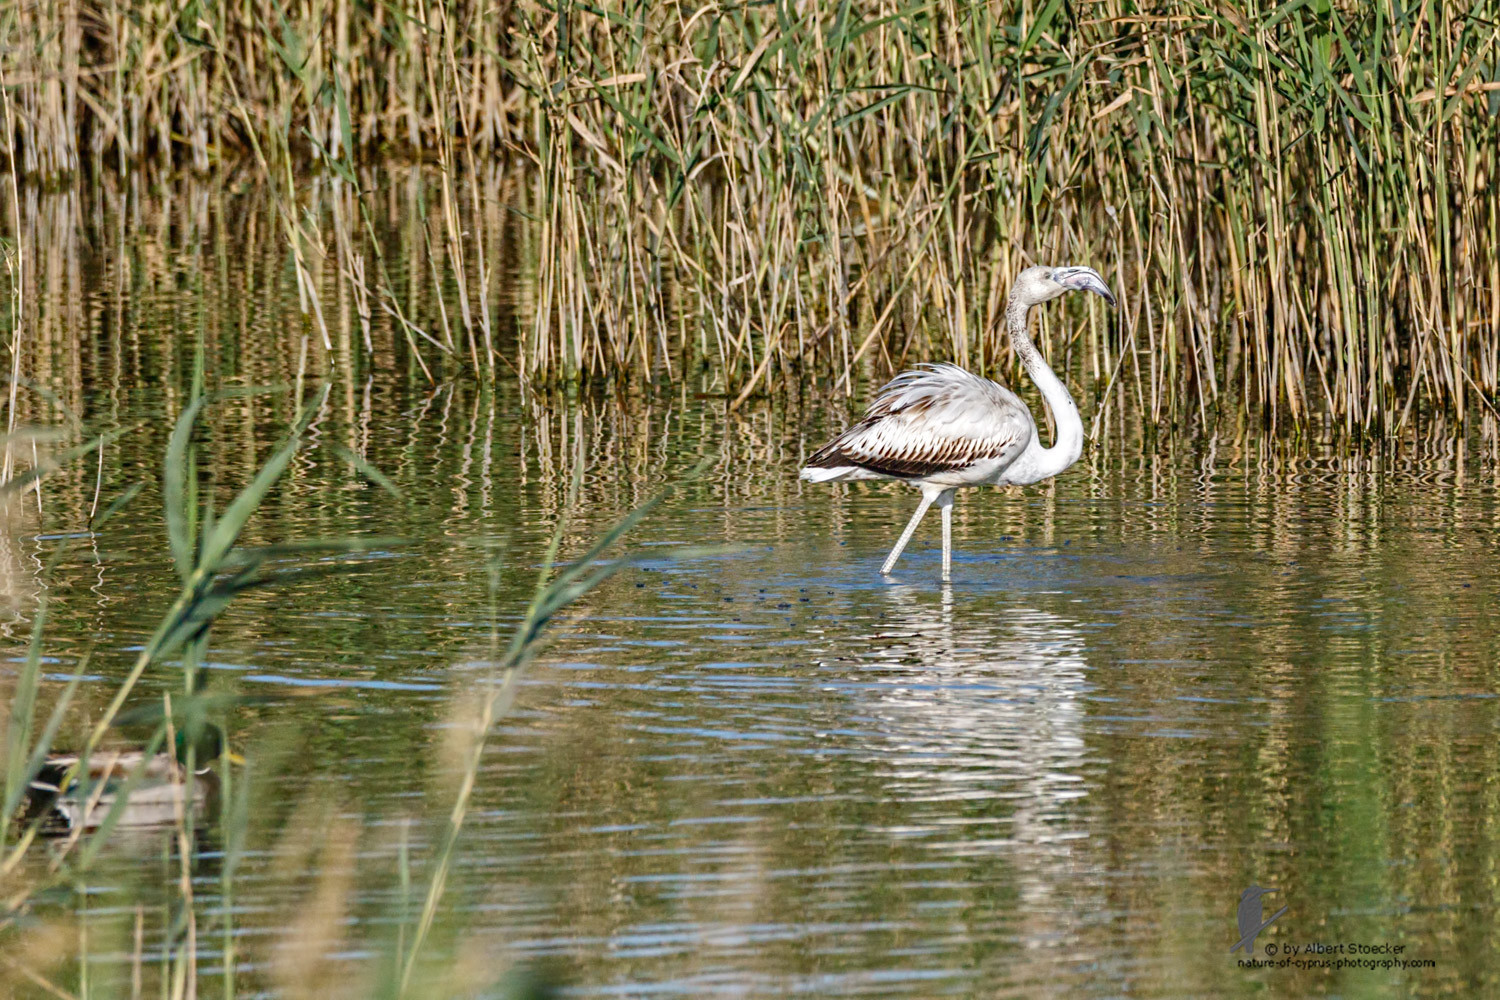 Phoenicopterus ruber - Greater Flamingo (juvenile) - Rosaflamingo, Cyprus, Zakai Marsh, March 2016